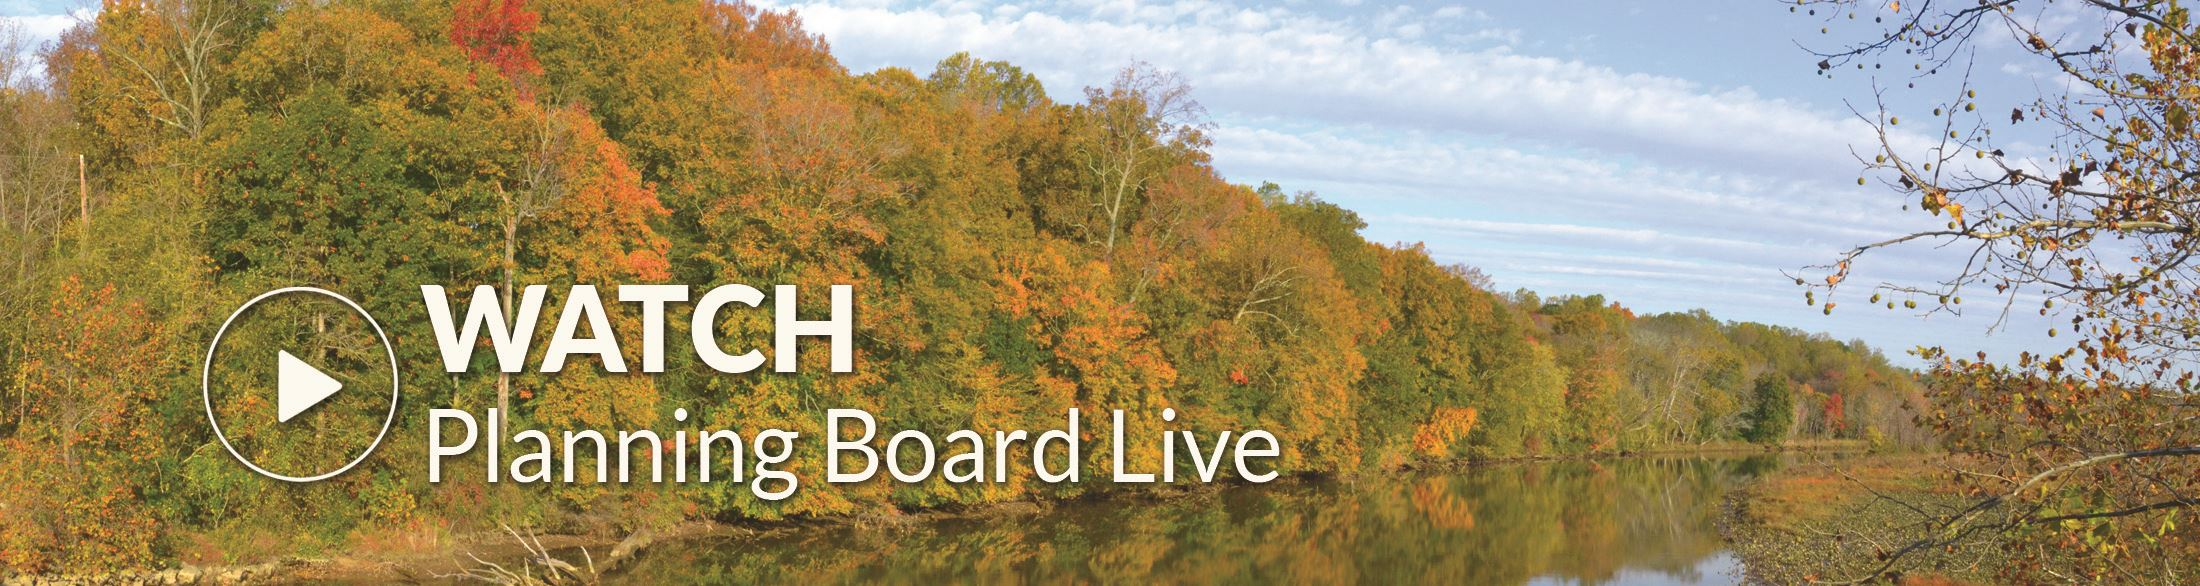 Watch Planning Board Sessions Live!